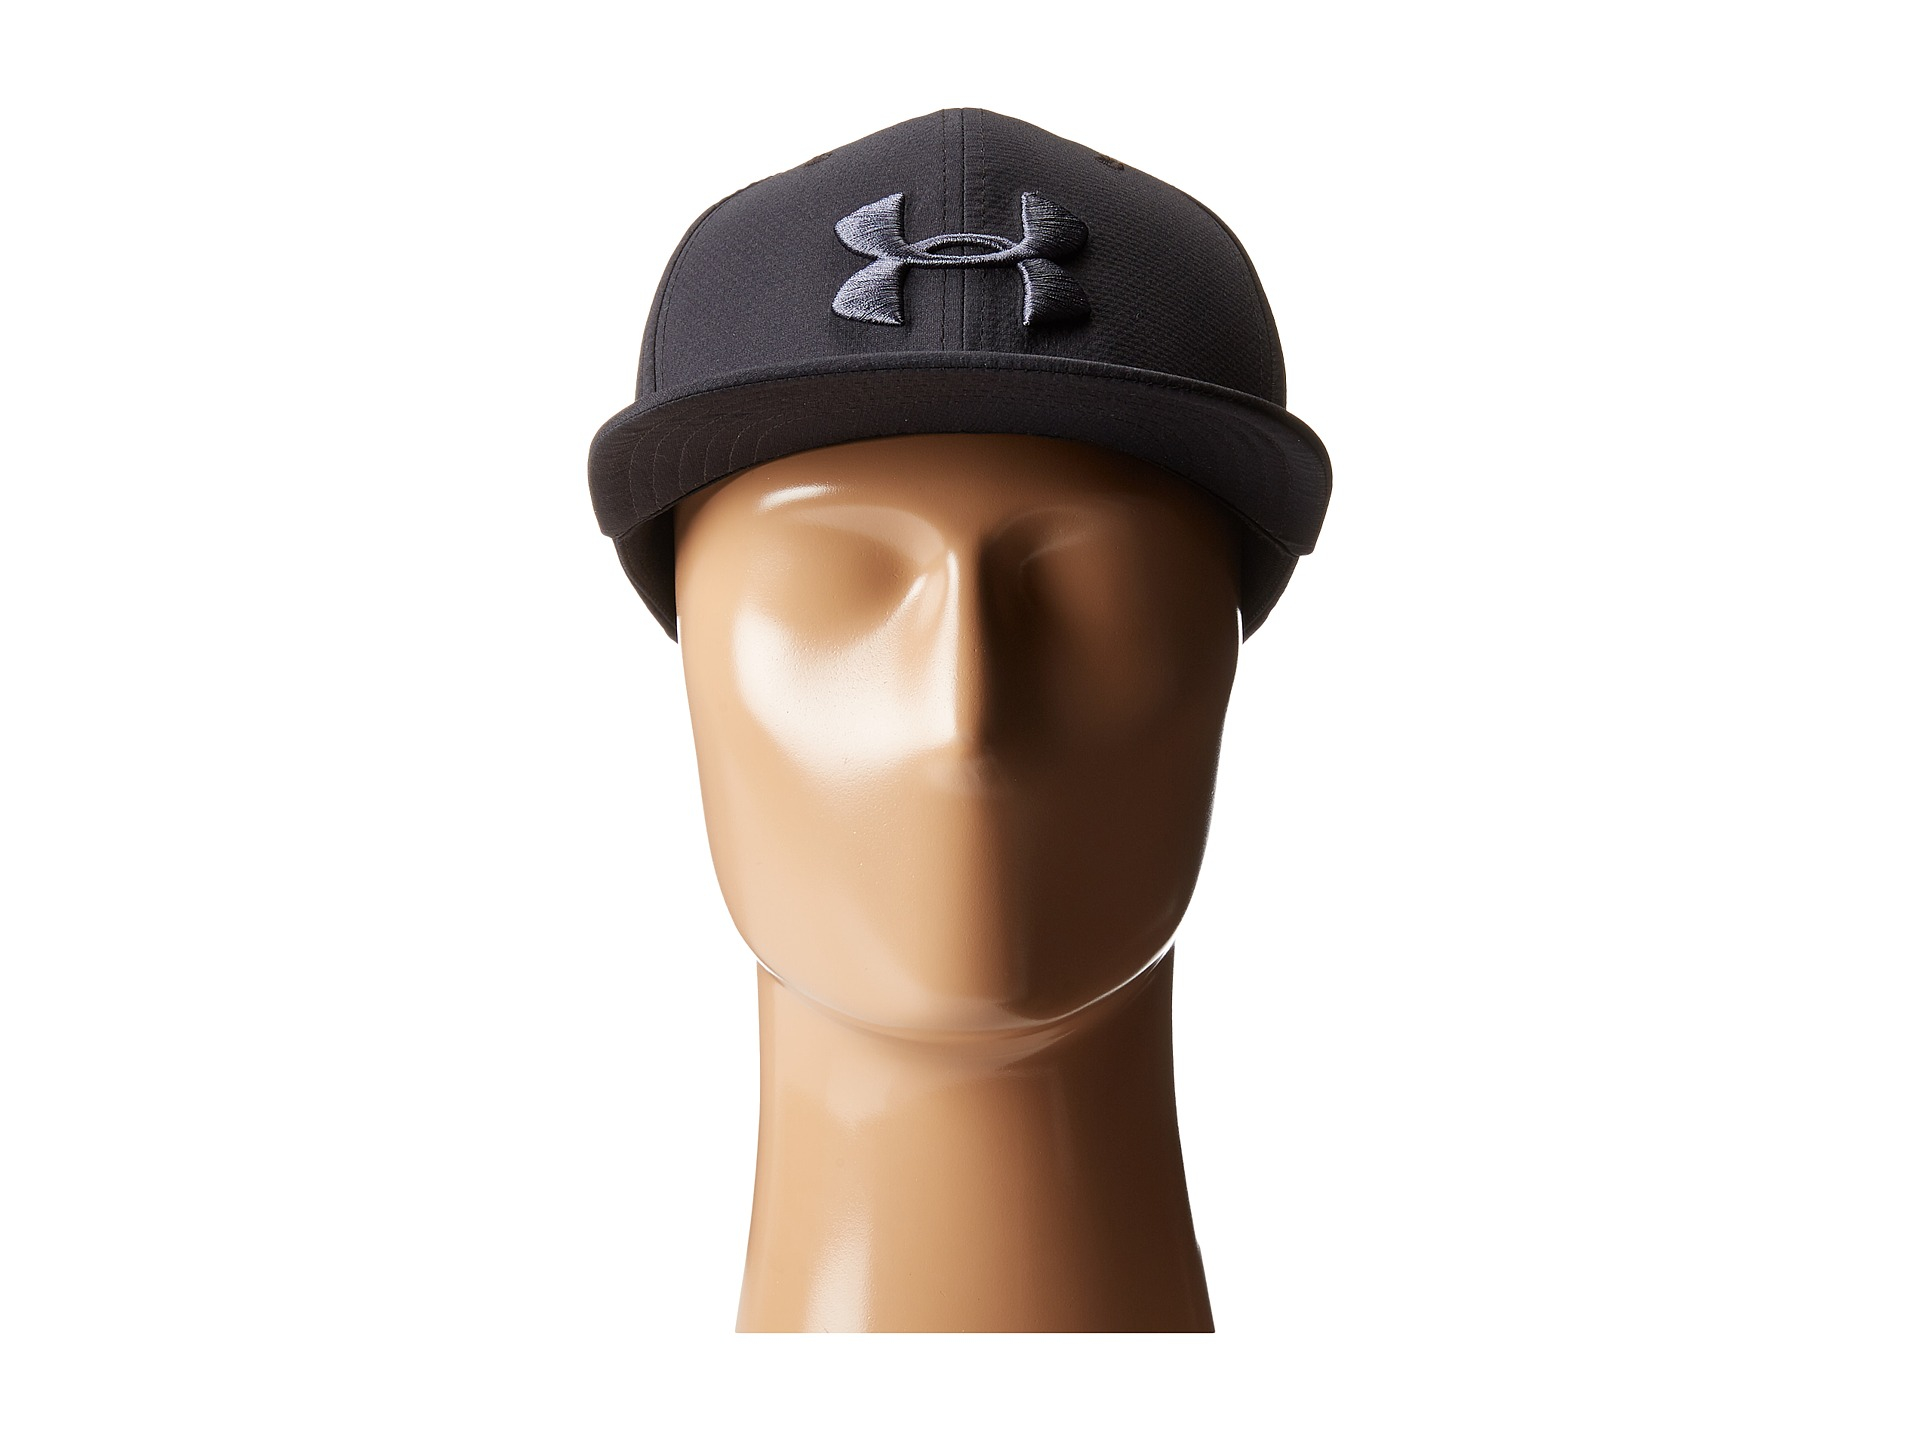 new product 254f8 8c93c ... usa lyst under armour ua elevate 2.0 cap in black for men 72fe8 faa88